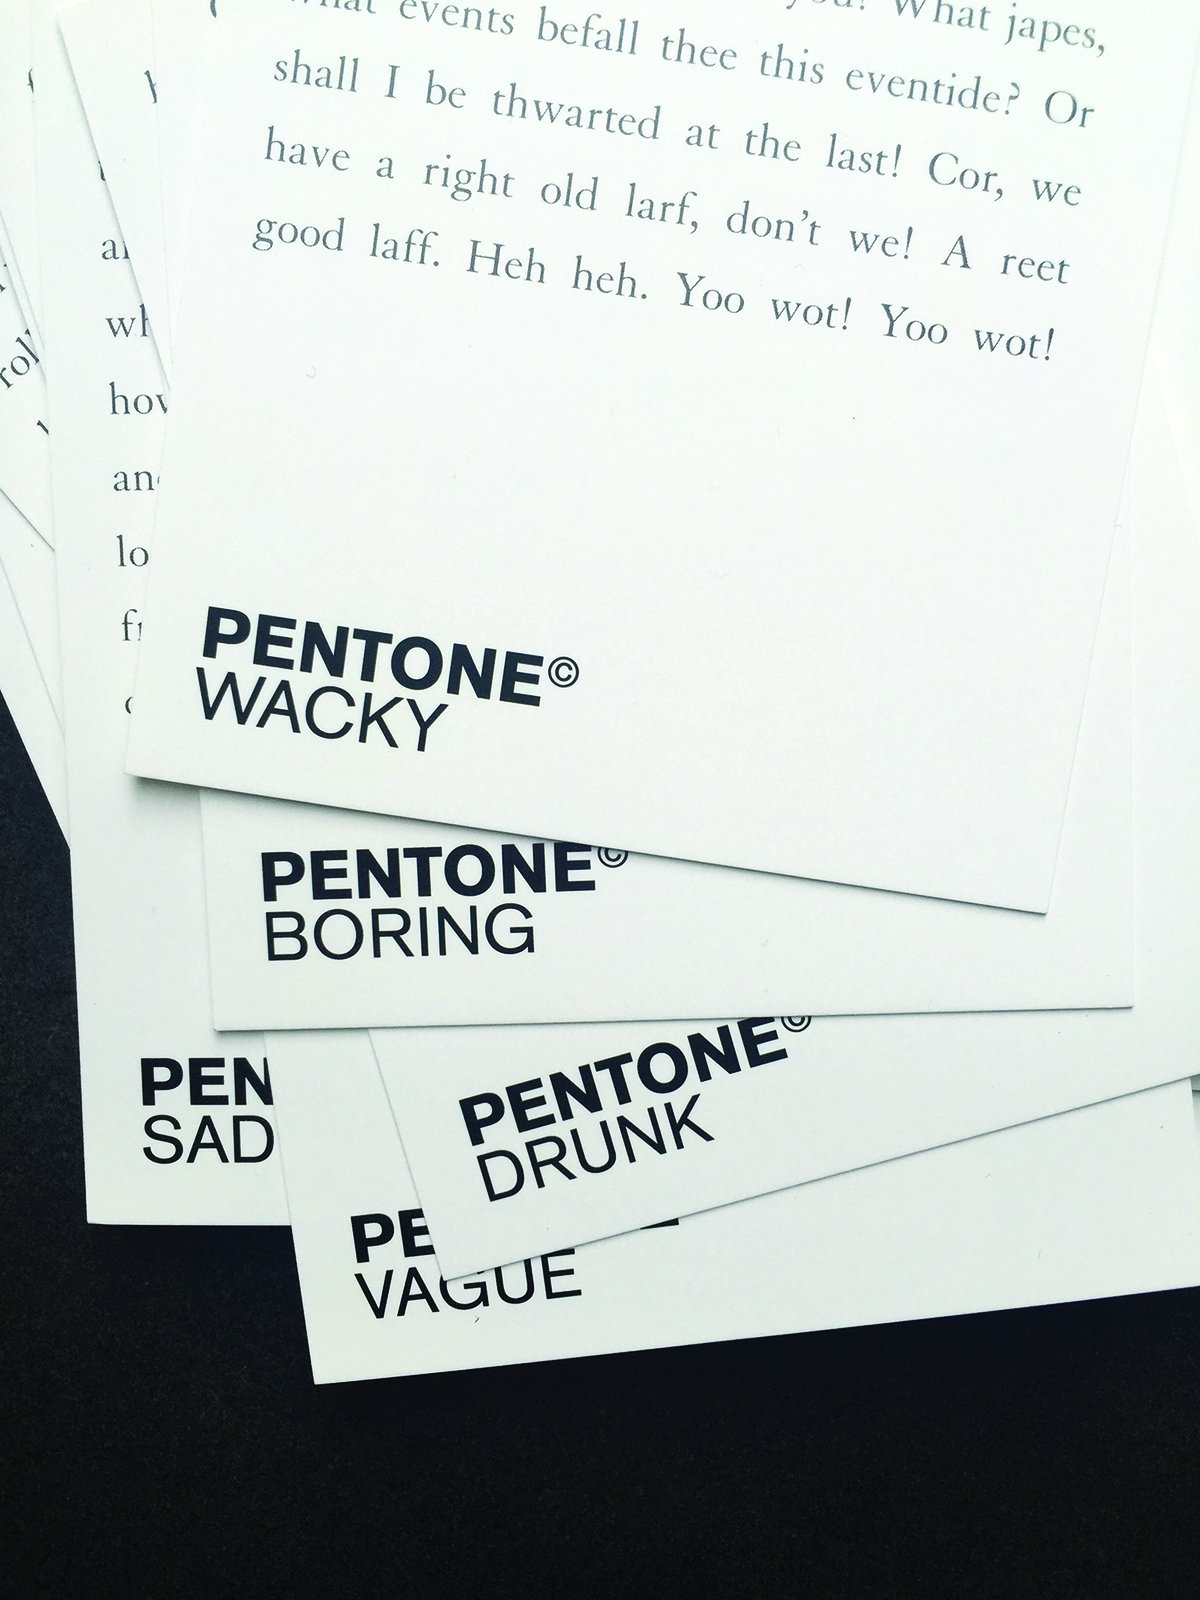 This page: What happens if you apply the Pantone colour-matching system to written tone of voice? Pentone is an ongoing project by Asbury & Asbury